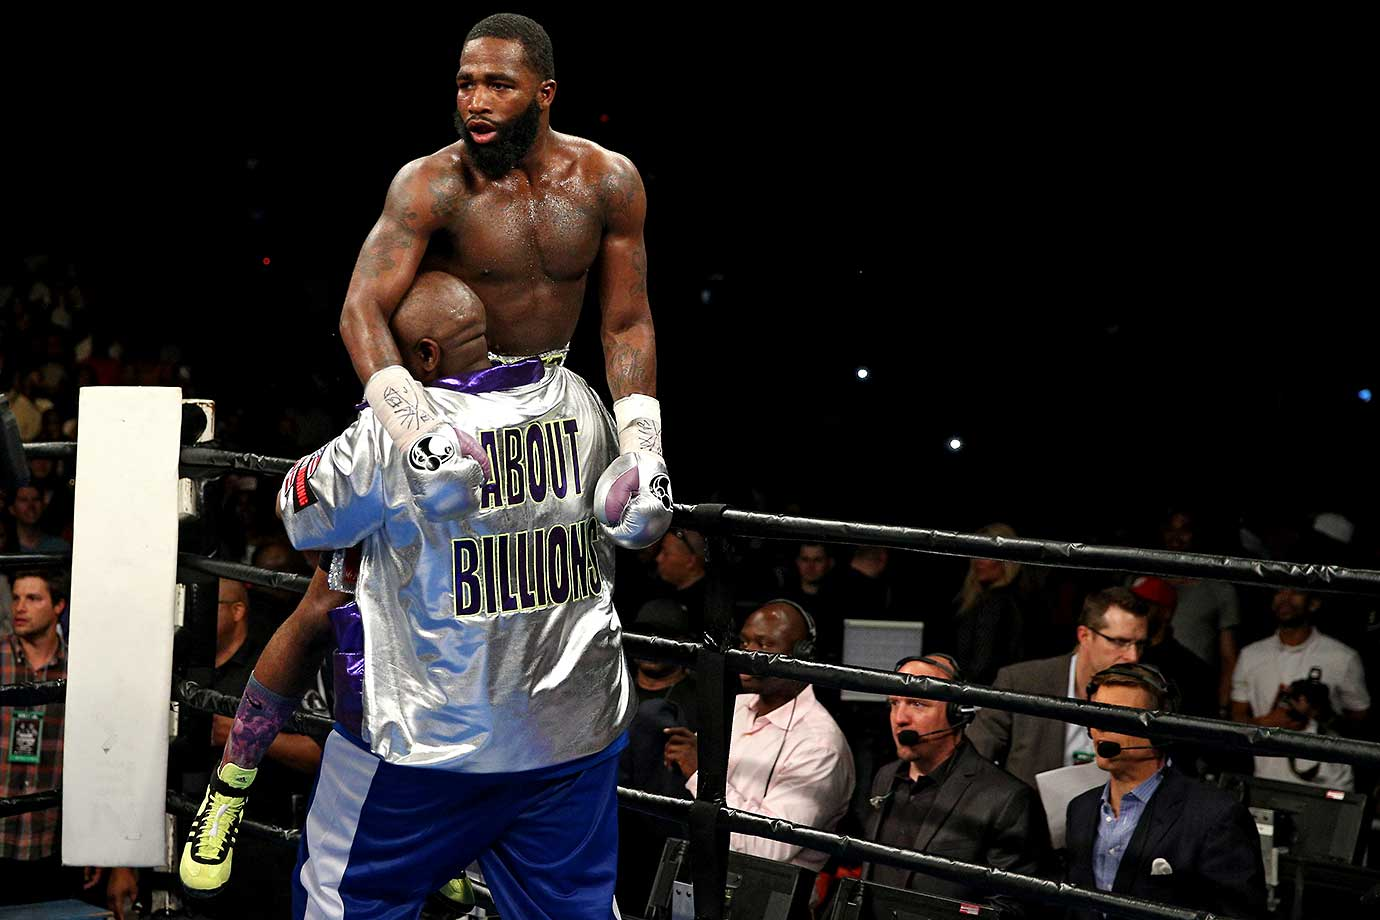 Adrien Broner celebrates after defeating Ashley Theophane by TKO in the ninth round in their super lightweight championship bout.